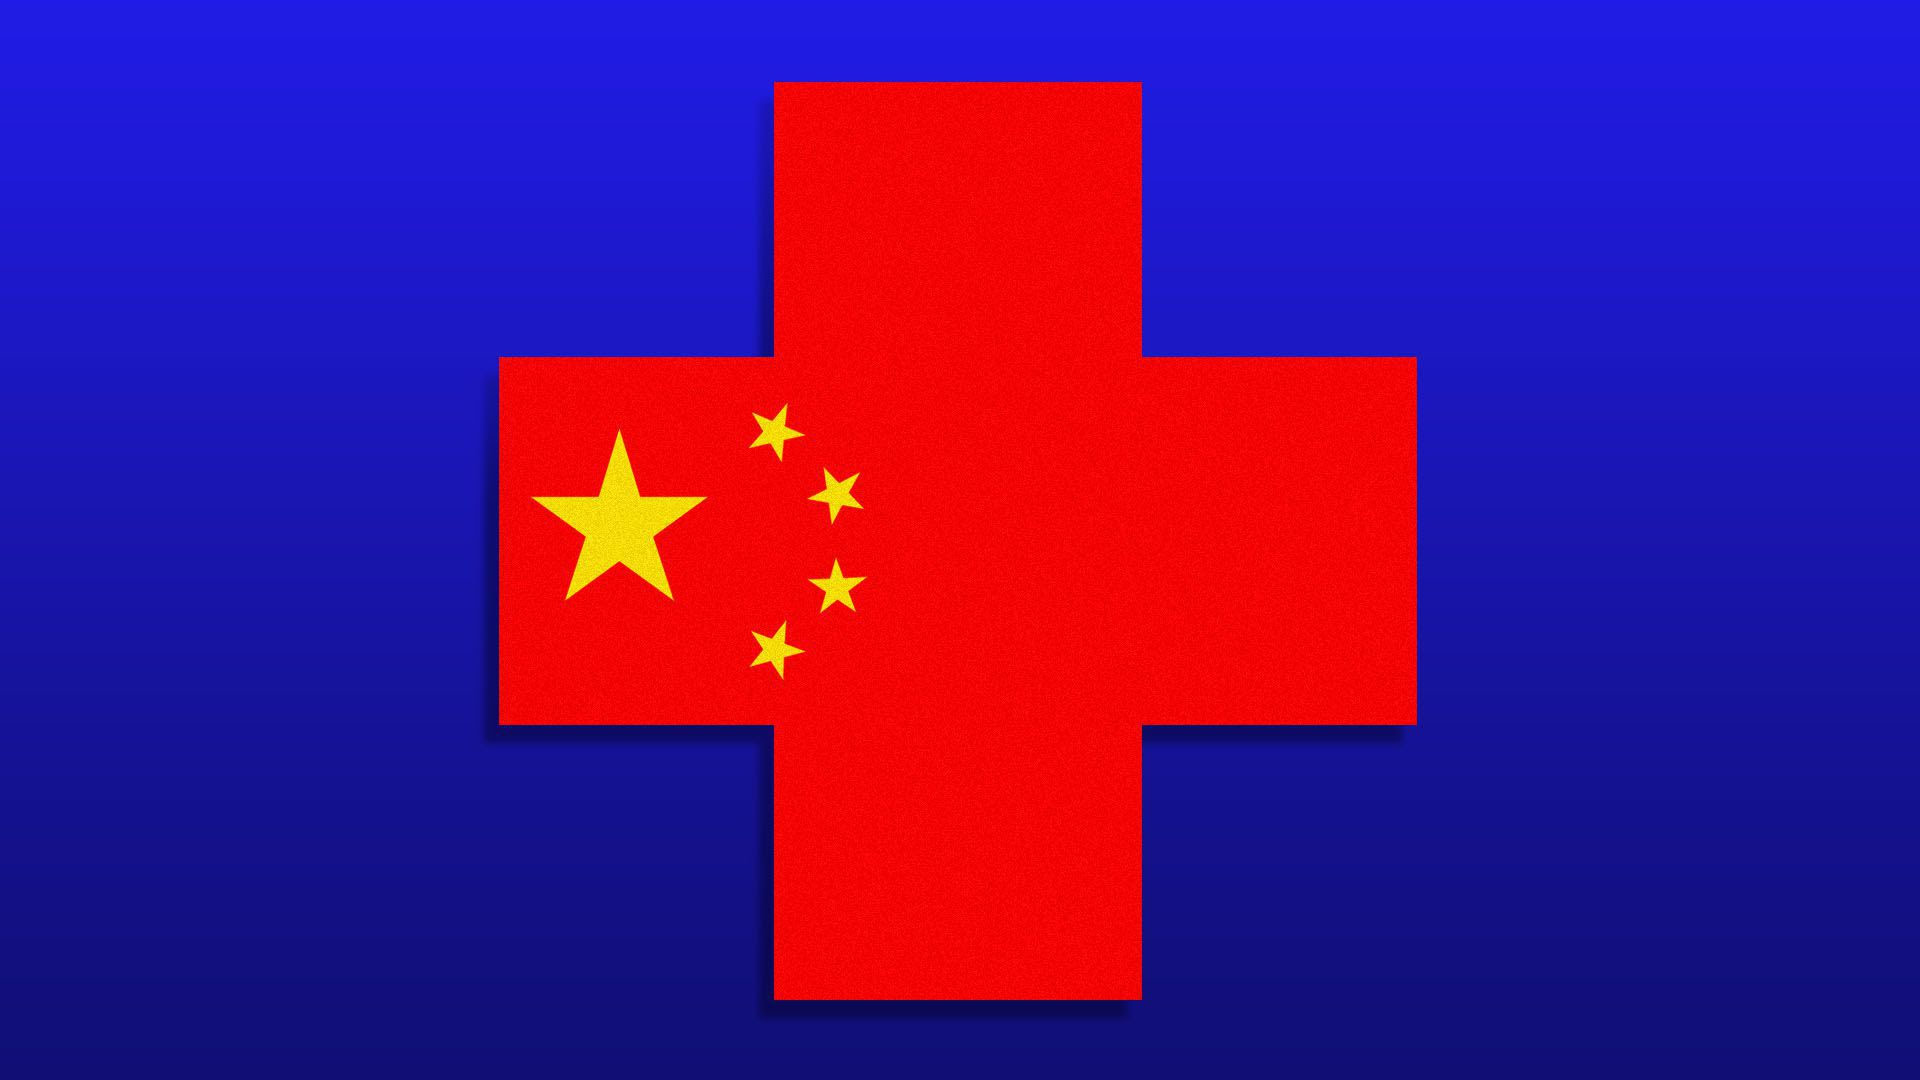 Illustration of the Chinese flag as a red cross